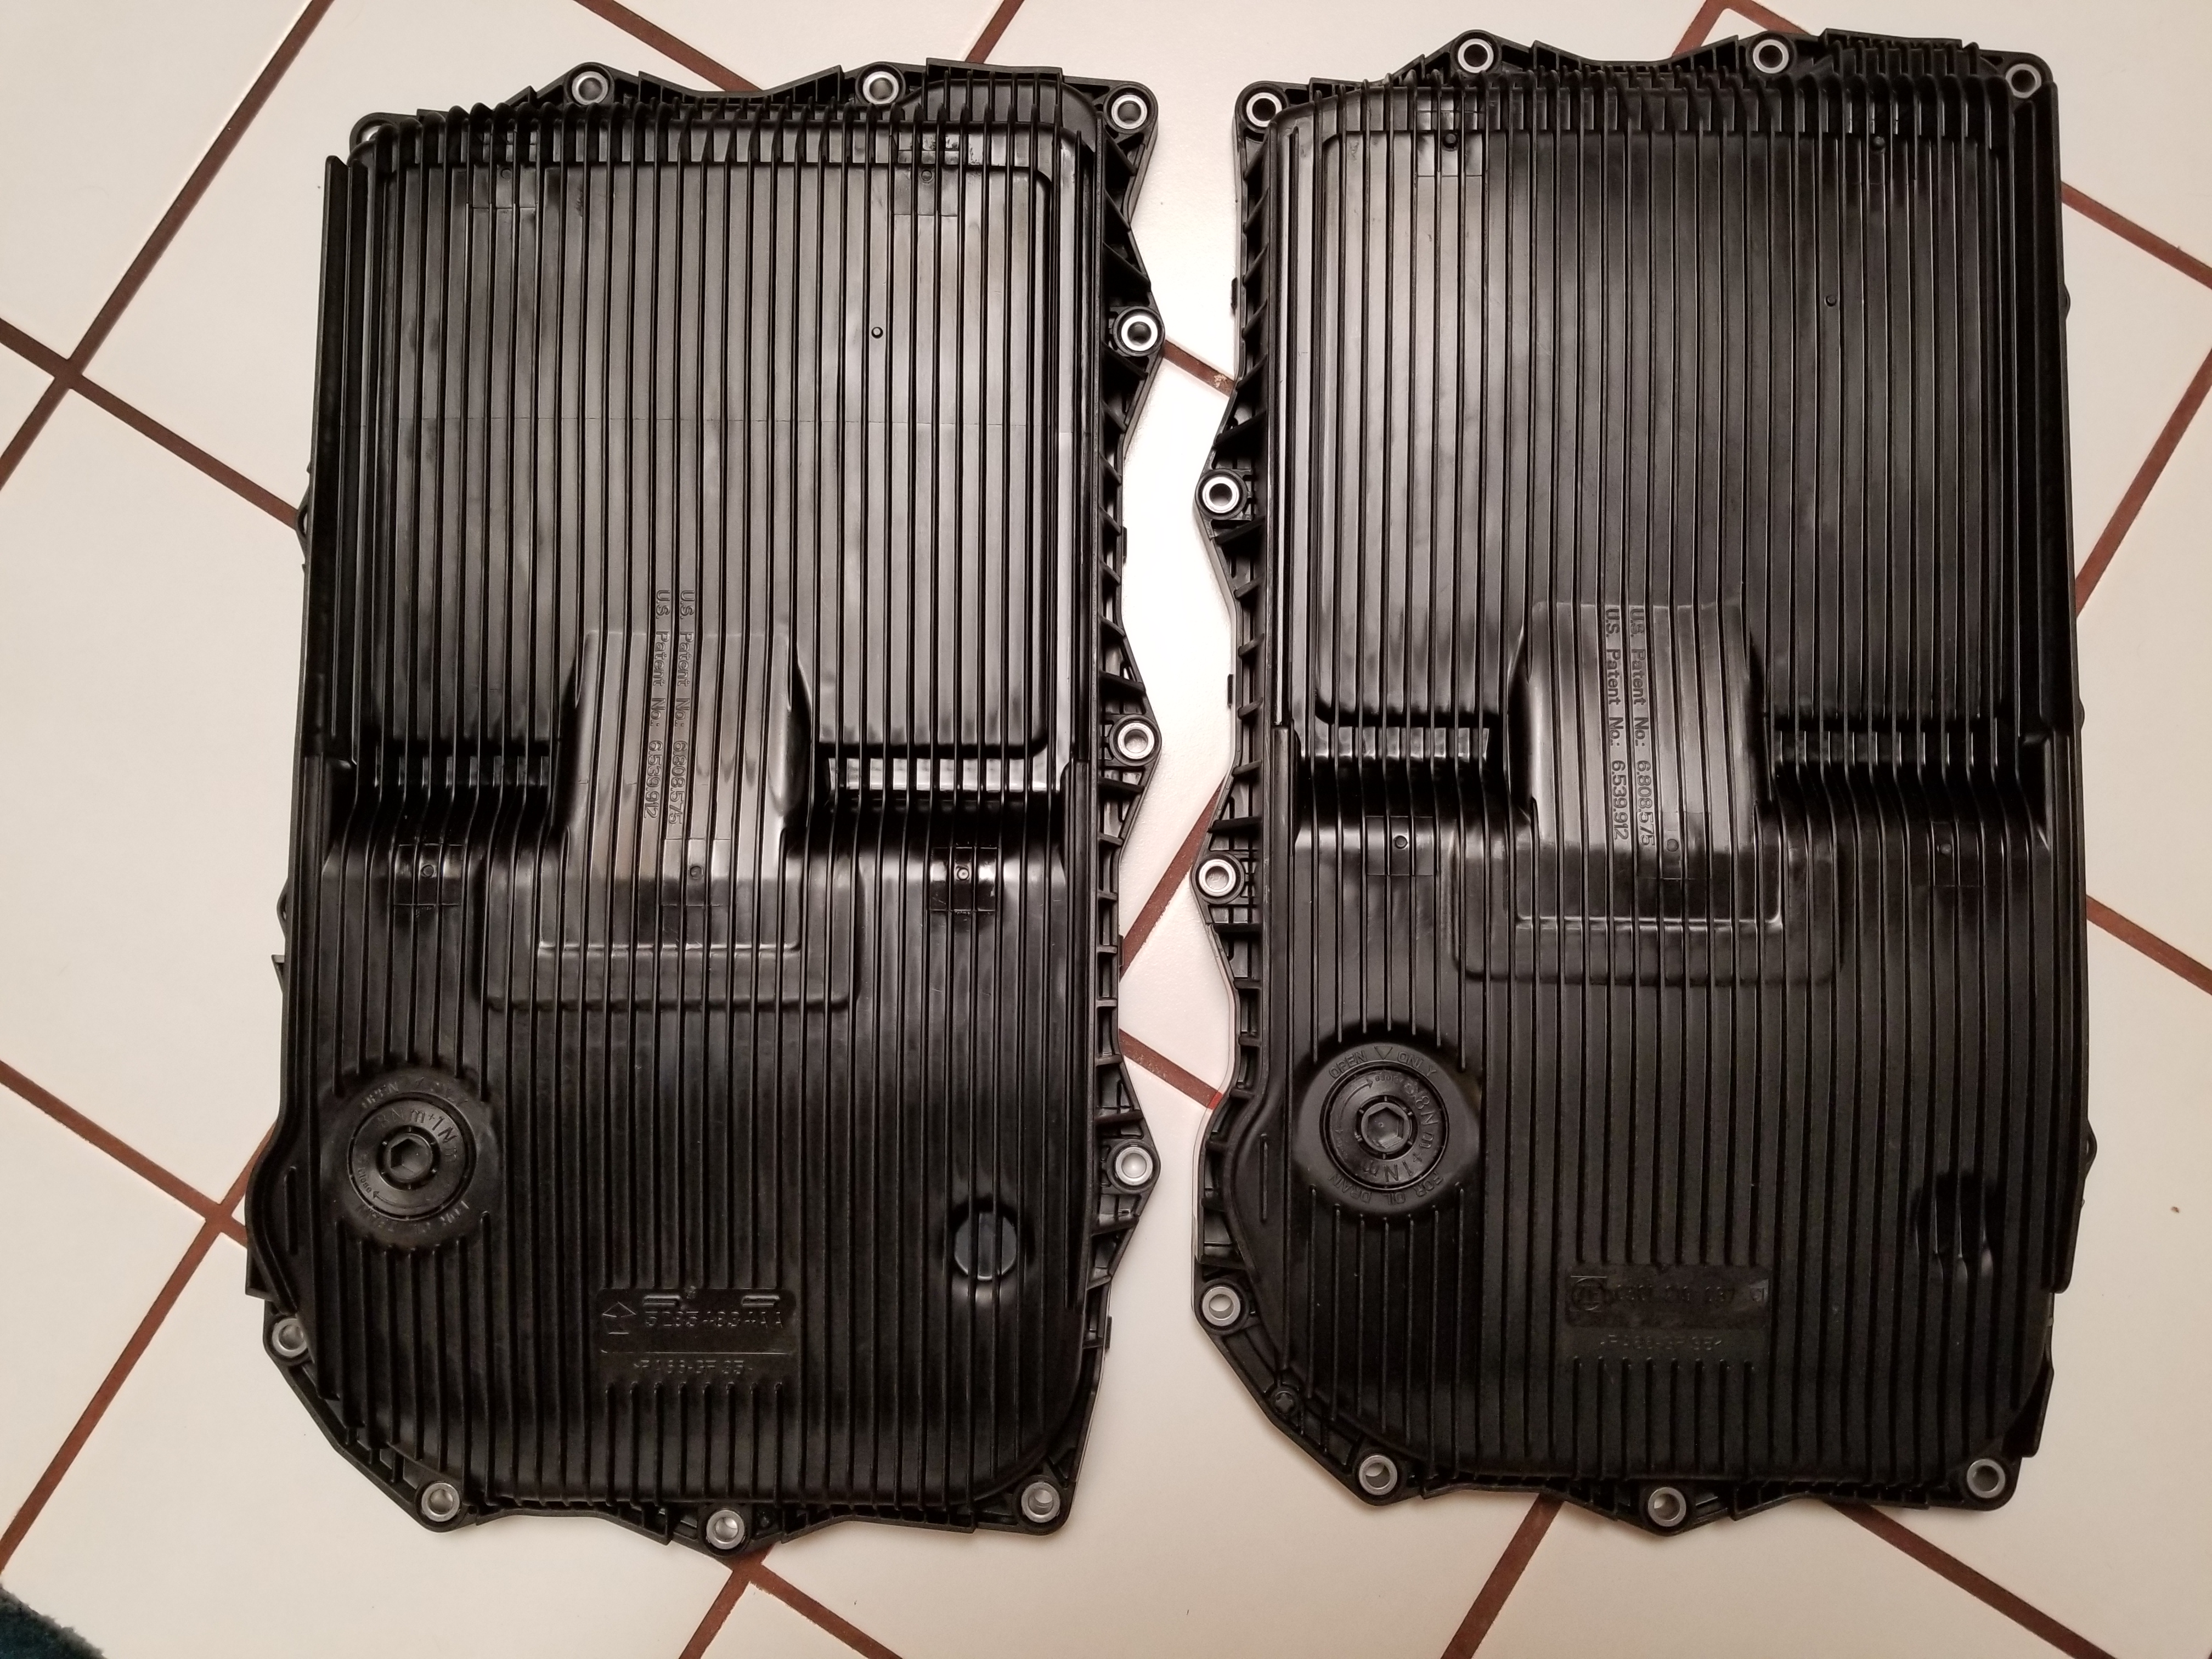 ZF 8HP plastic transmission pan differences-20180913_165337.jpg